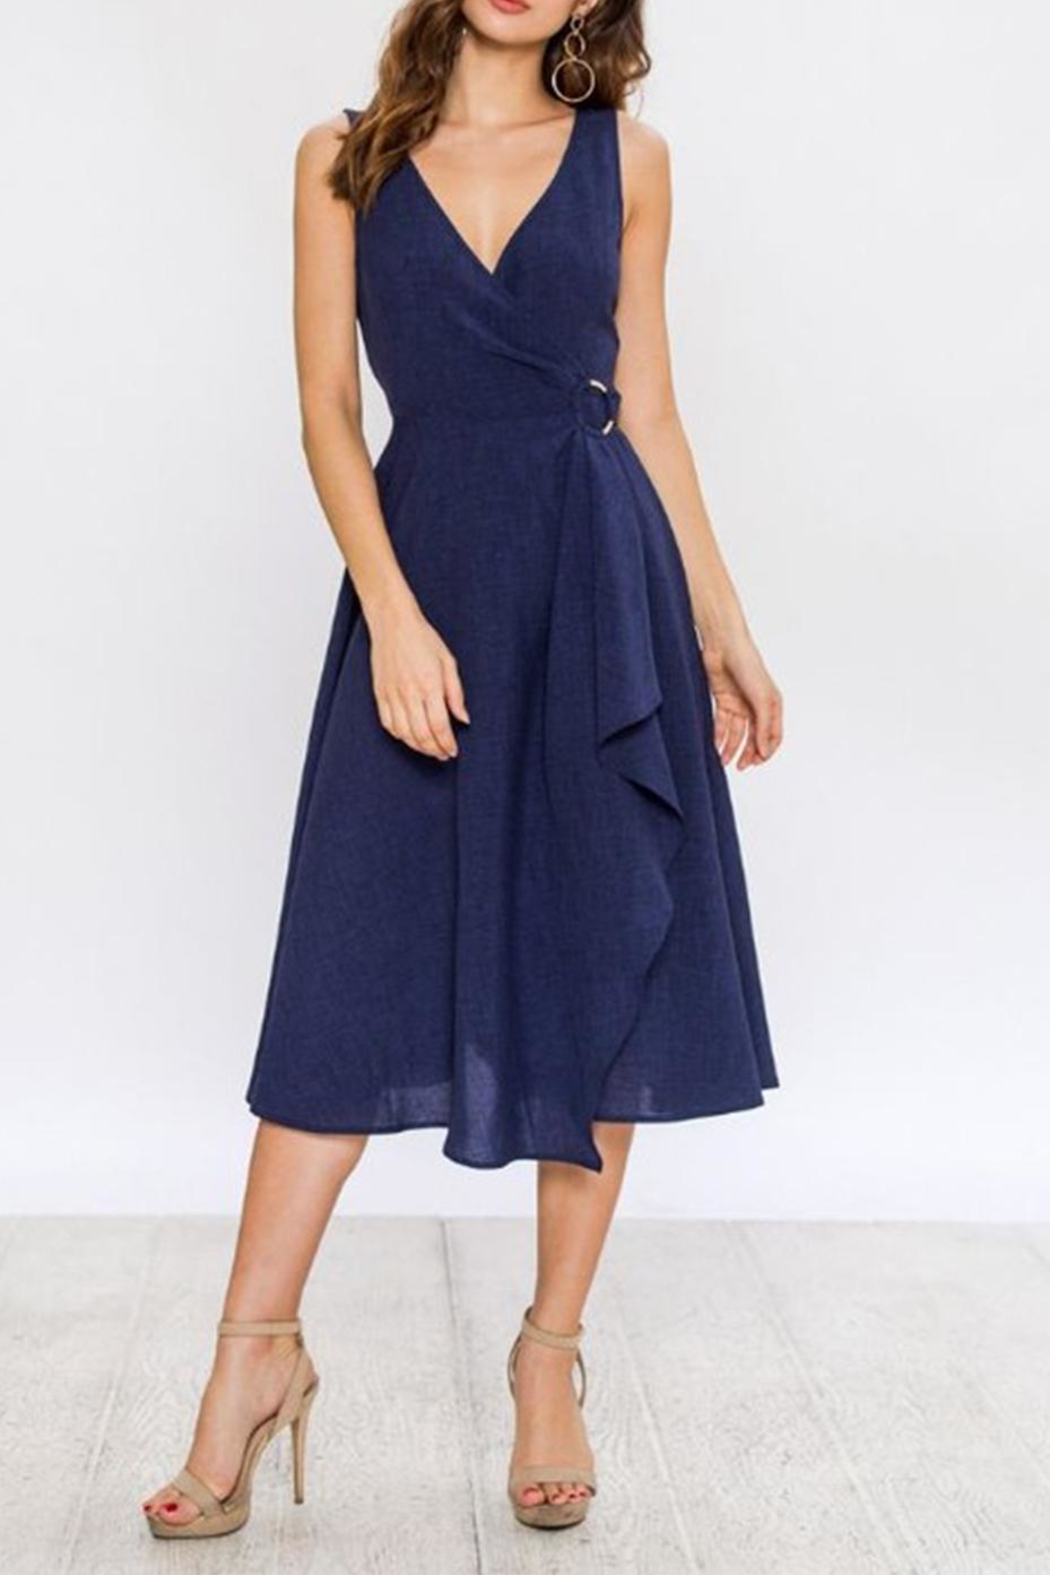 Jealous Tomato Navy Wrap Dress - Main Image